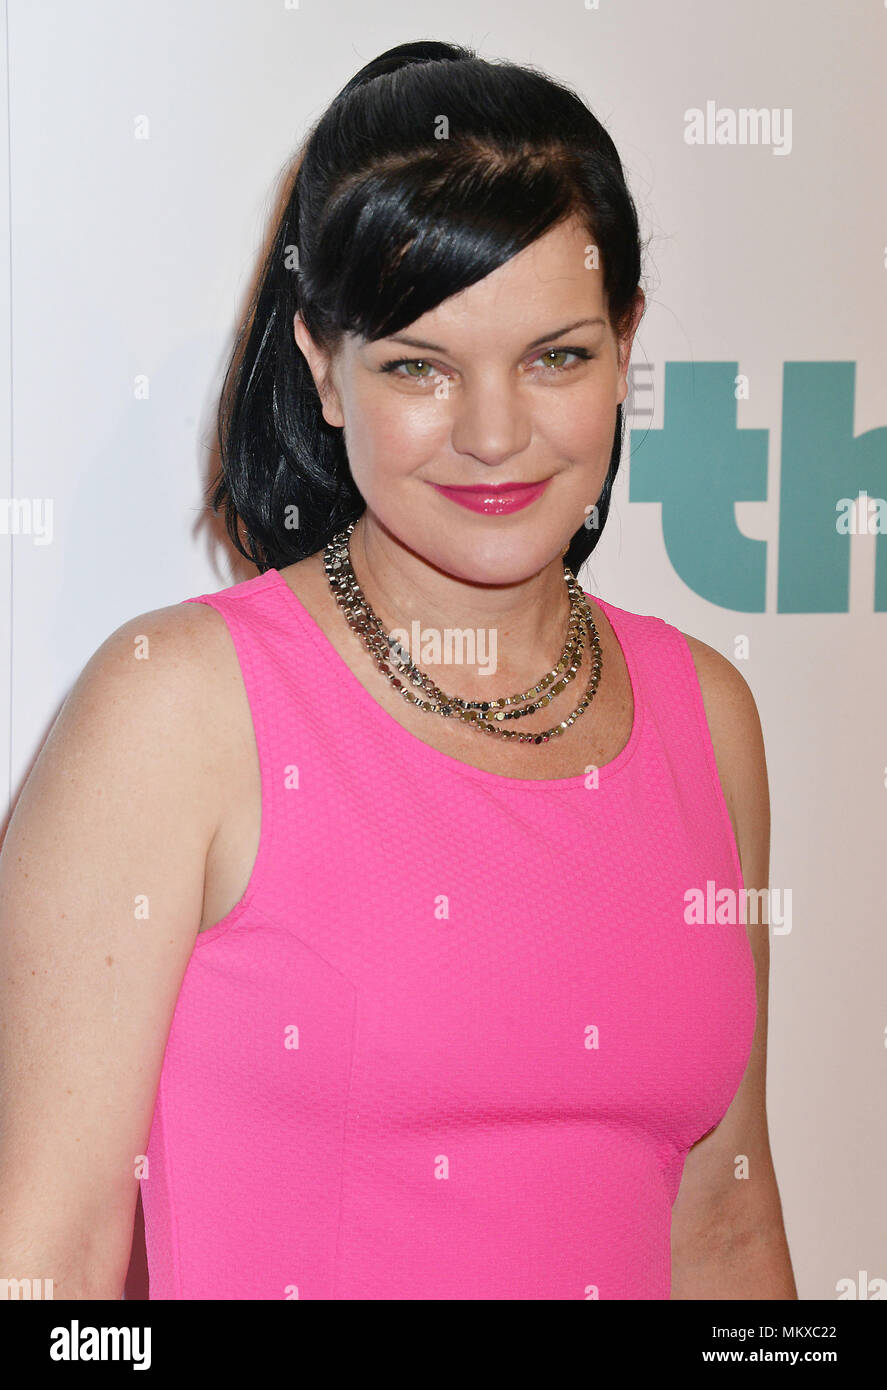 Pauley Perrette  at the 5th Ann. Thirst Gala at the Beverly Hilton in Los Angeles. Pauley Perrette 032 Red Carpet Event, Vertical, USA, Film Industry, Celebrities,  Photography, Bestof, Arts Culture and Entertainment, Topix Celebrities fashion /  Vertical, Best of, Event in Hollywood Life - California,  Red Carpet and backstage, USA, Film Industry, Celebrities,  movie celebrities, TV celebrities, Music celebrities, Photography, Bestof, Arts Culture and Entertainment,  Topix, headshot, vertical, one person,, from the year , 2014, inquiry tsuni@Gamma-USA.com - Stock Image